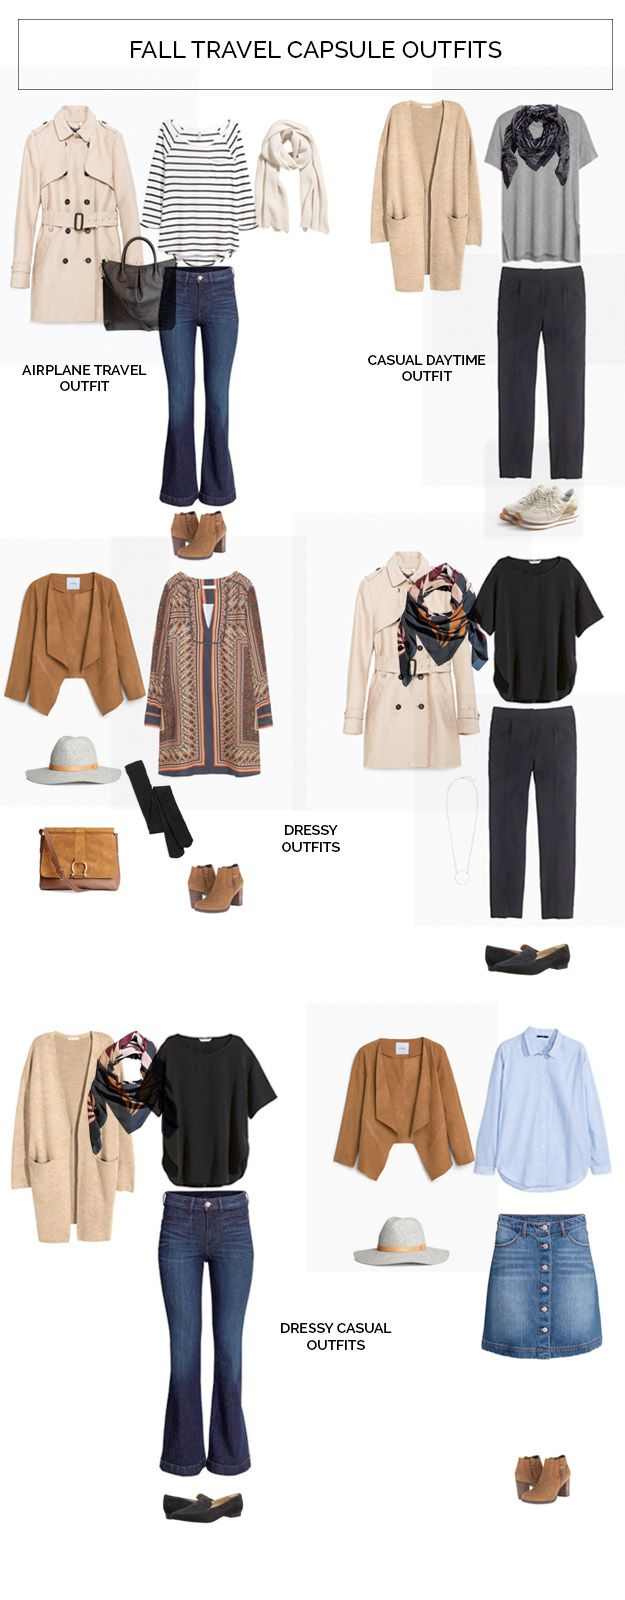 Fall Capsule Wardrobe From H M: Fall Travel Capsule Wardrobe Outfits